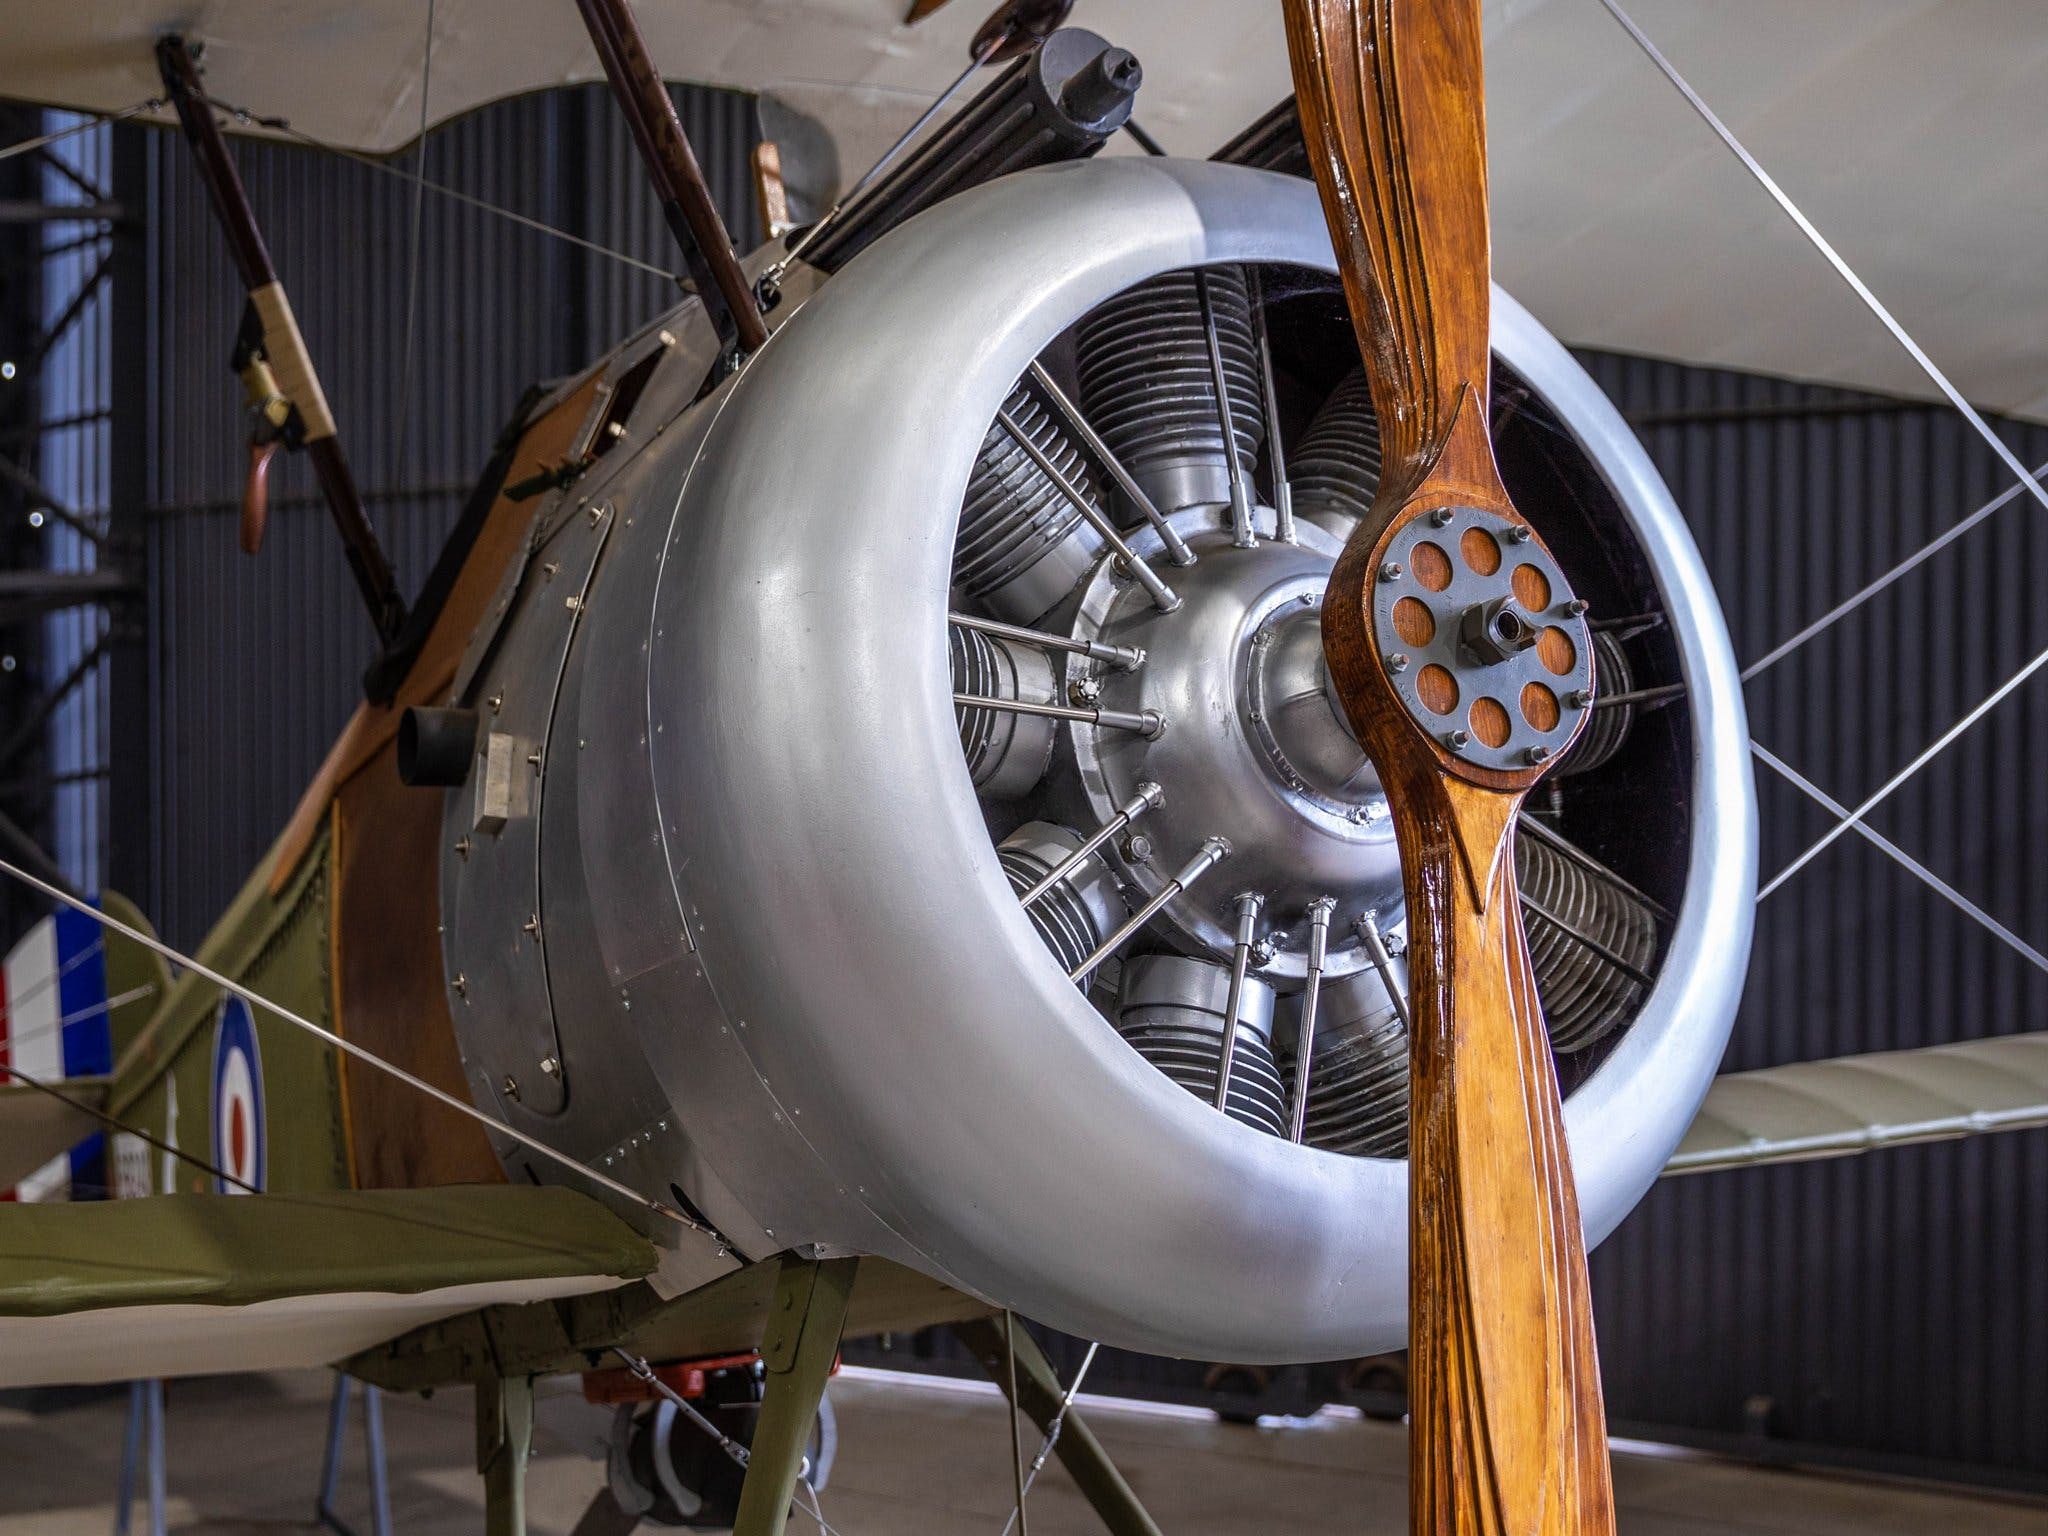 RAAF Amberley Aviation Heritage Centre - Tourism Caloundra